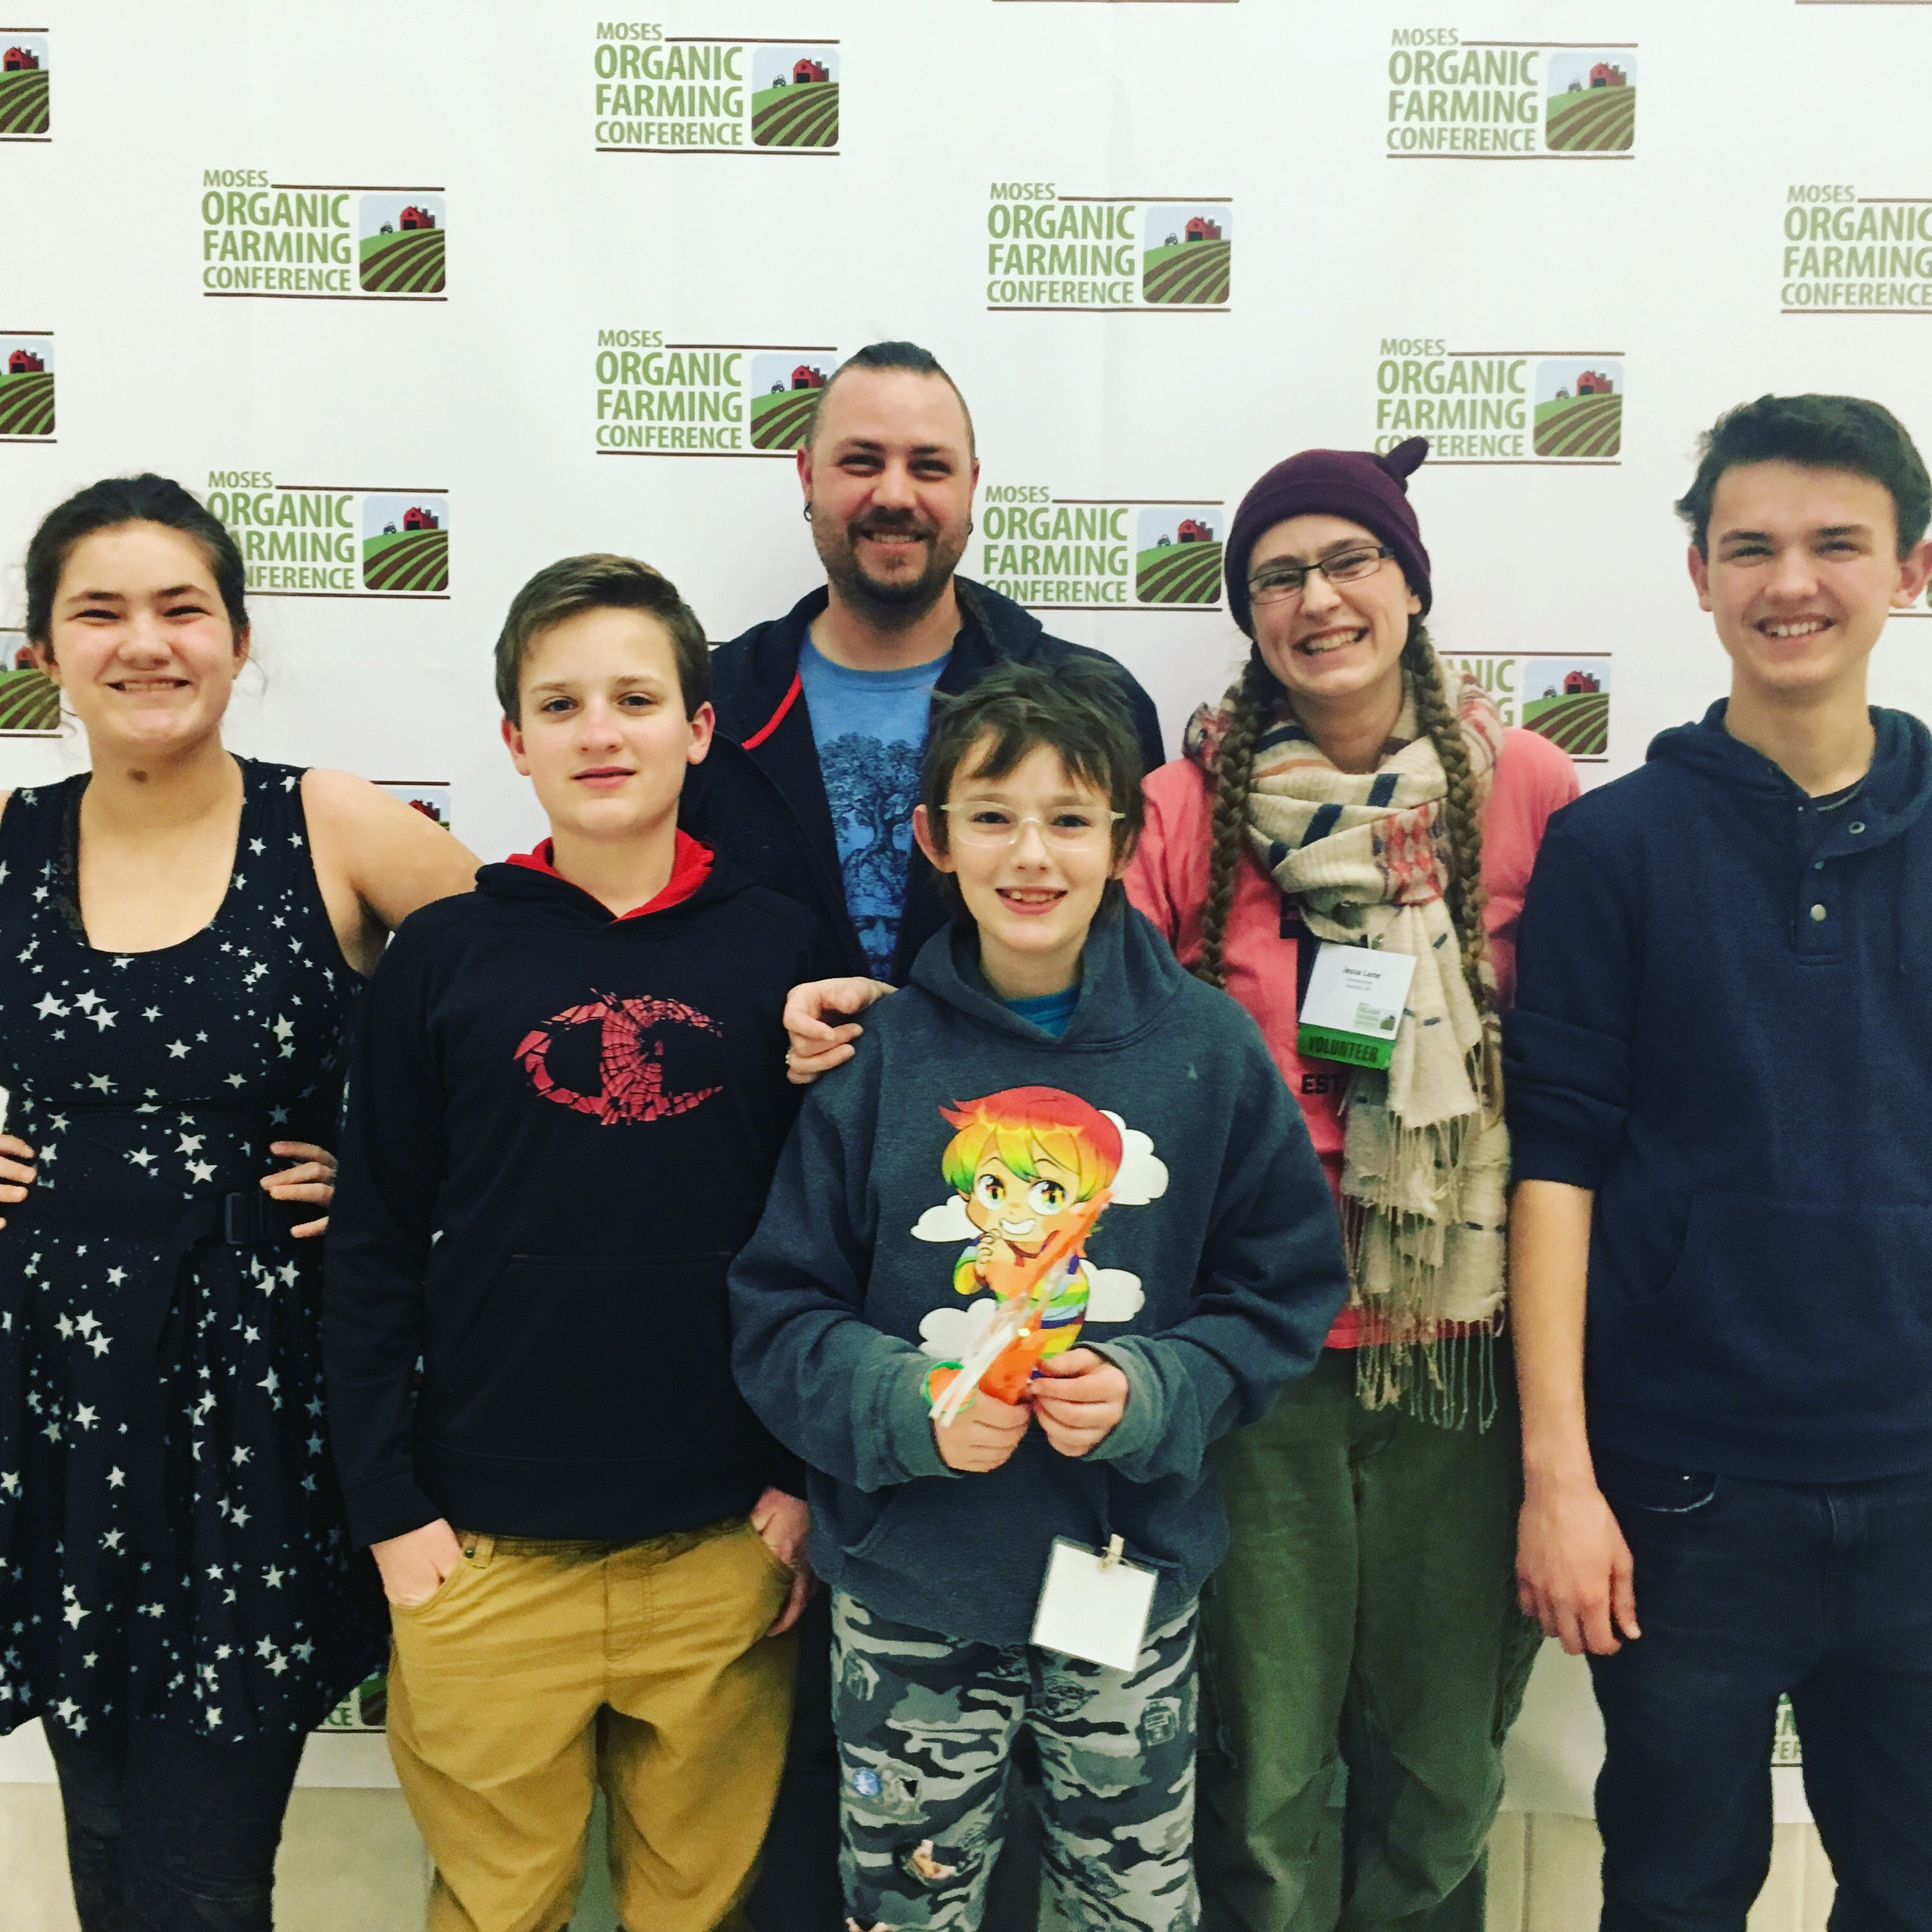 Adventures at the MOSES Organic Farming Conference